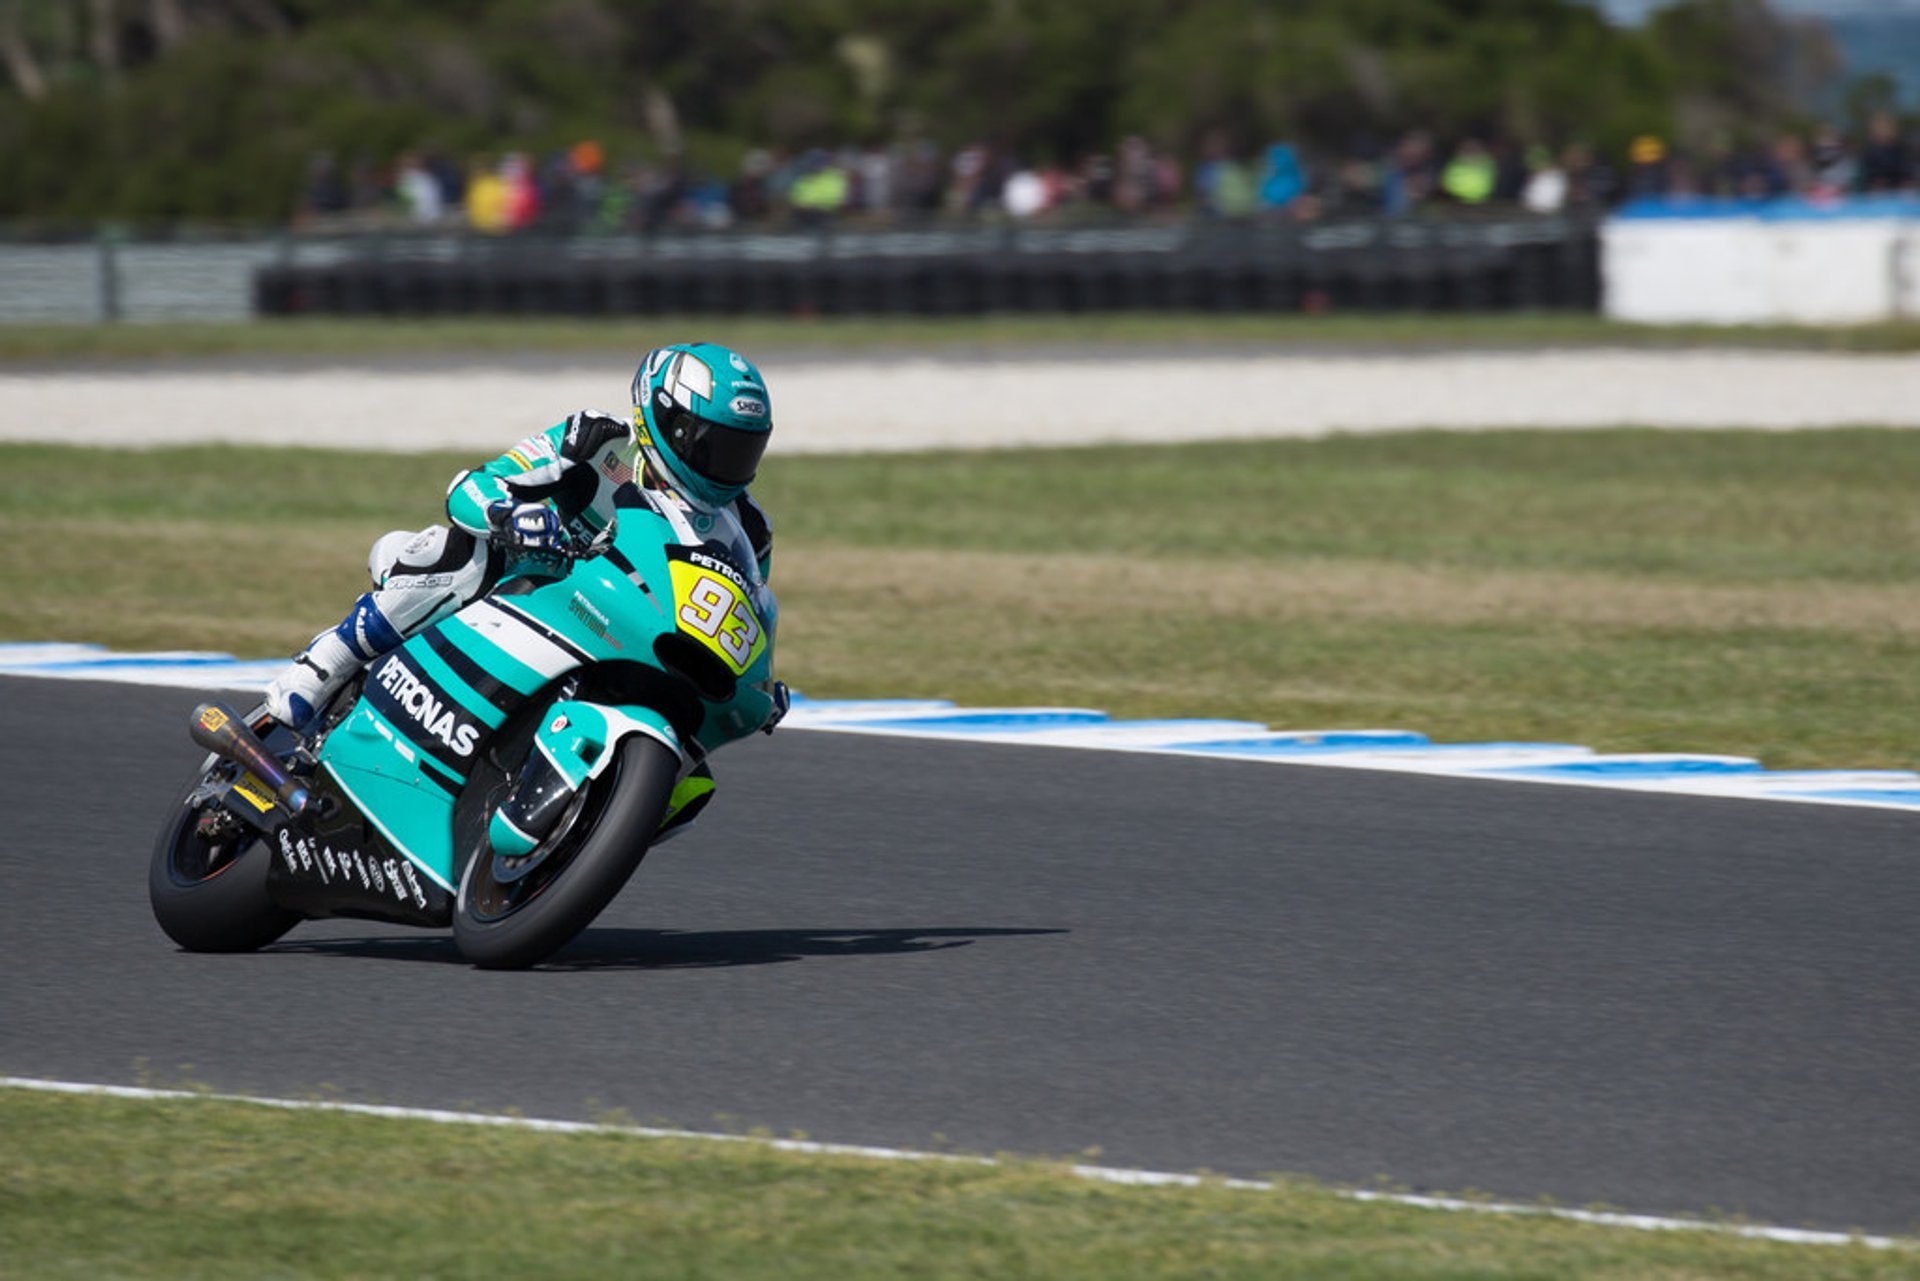 Australian Motorcycle Grand Prix in Victoria 2019 - Best Time